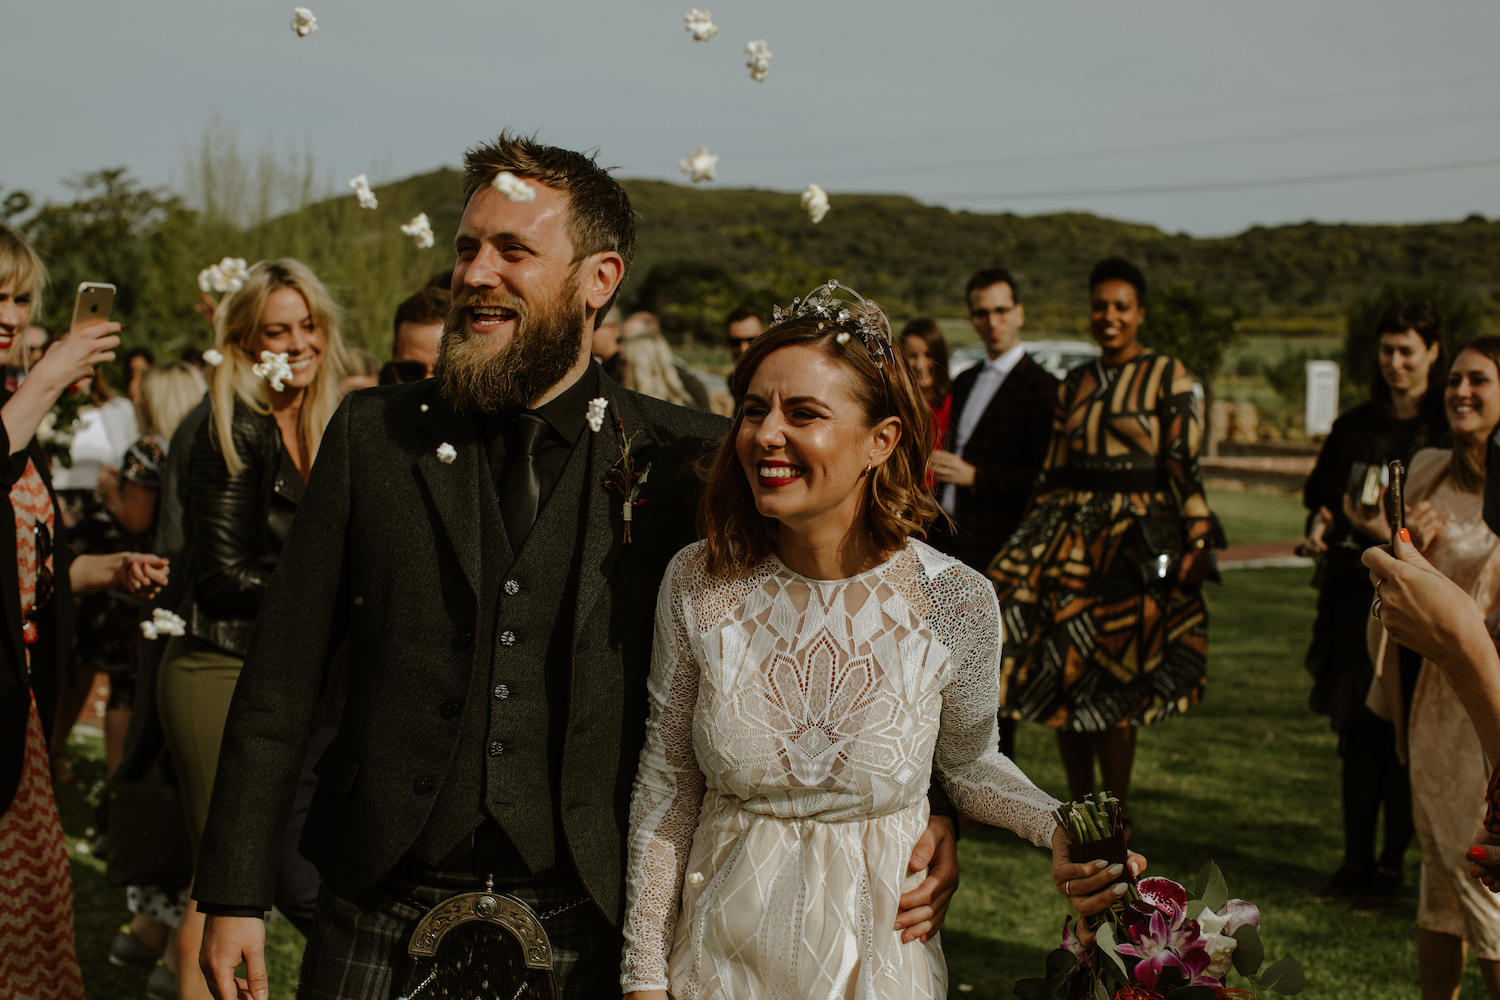 Beautiful bride Michelle wore a crown by Tilly Thomas Lux for her wedding day